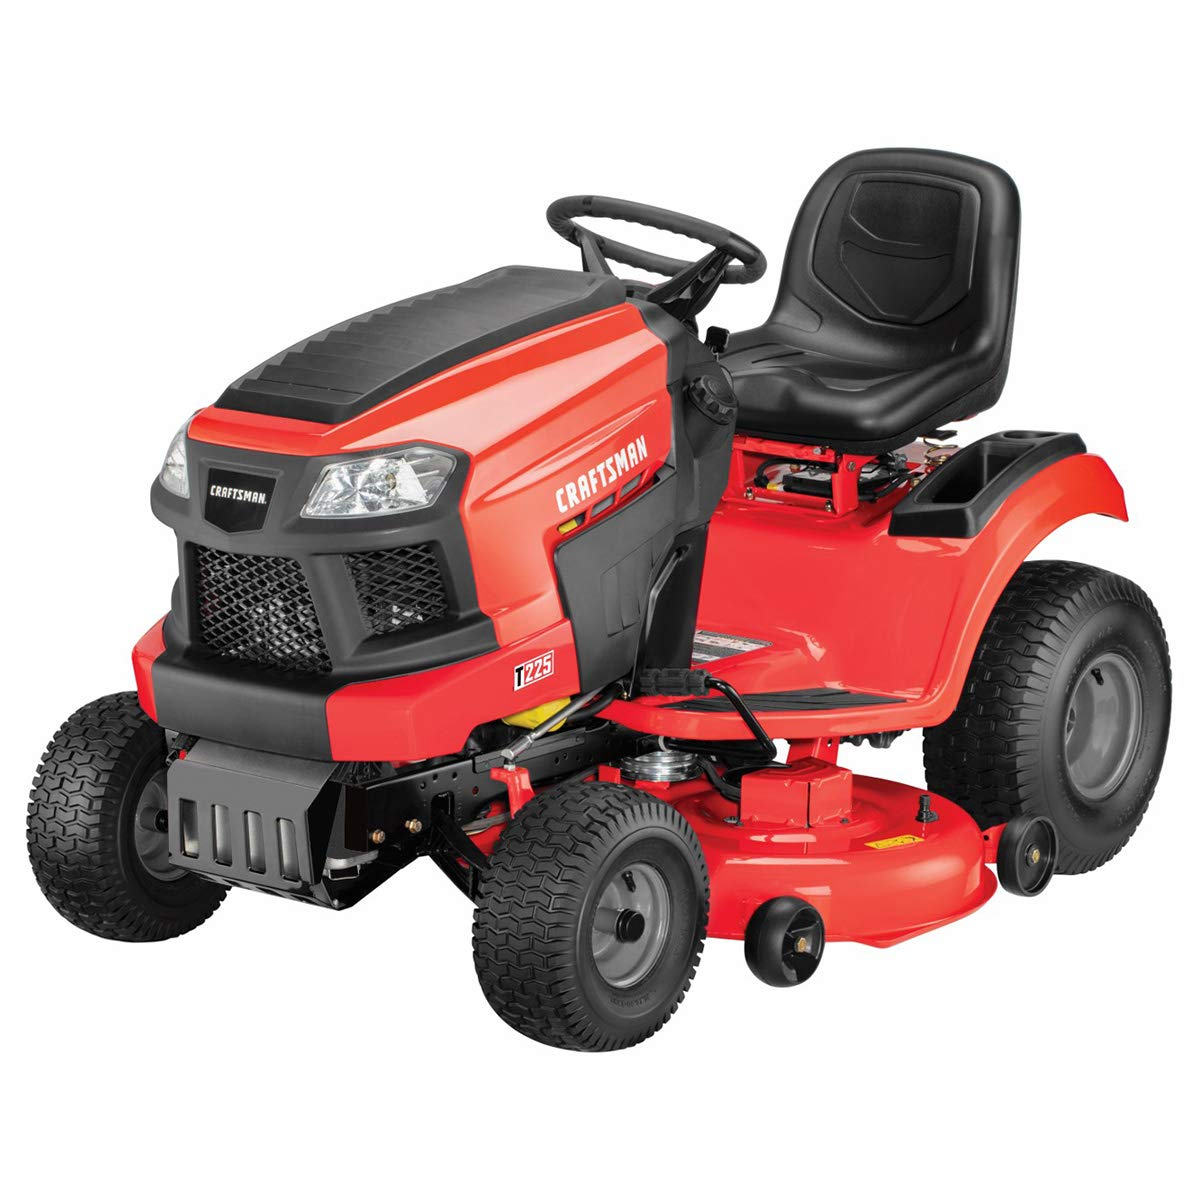 T225 Riding Lawn Mower by Craftsman